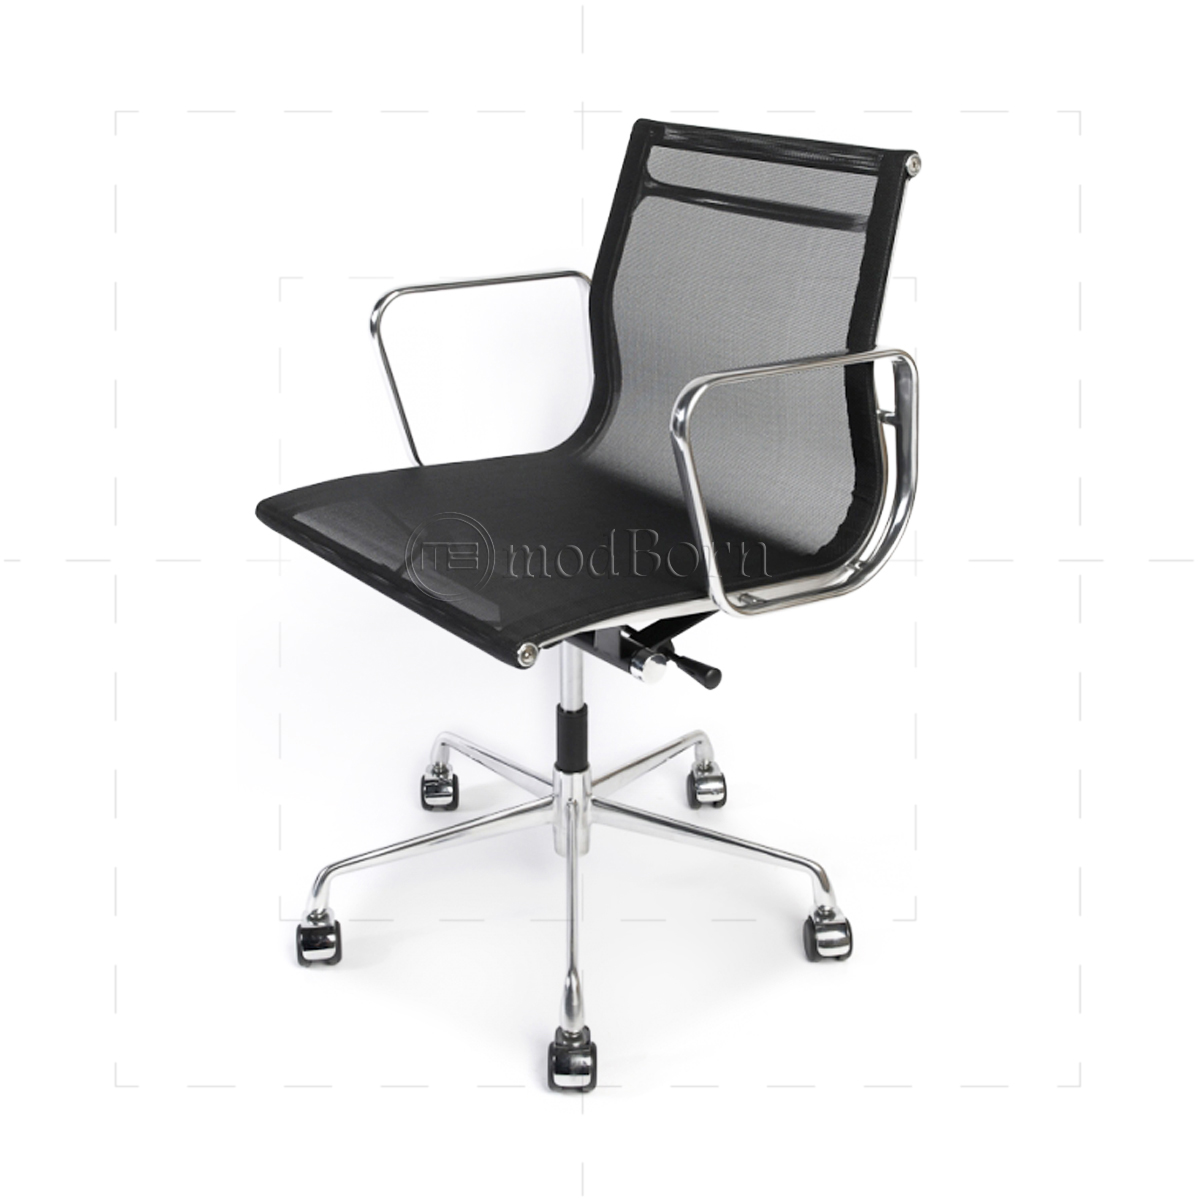 Ea117 eames style office mesh chair low back ribbed black for Eames chair replica deutschland